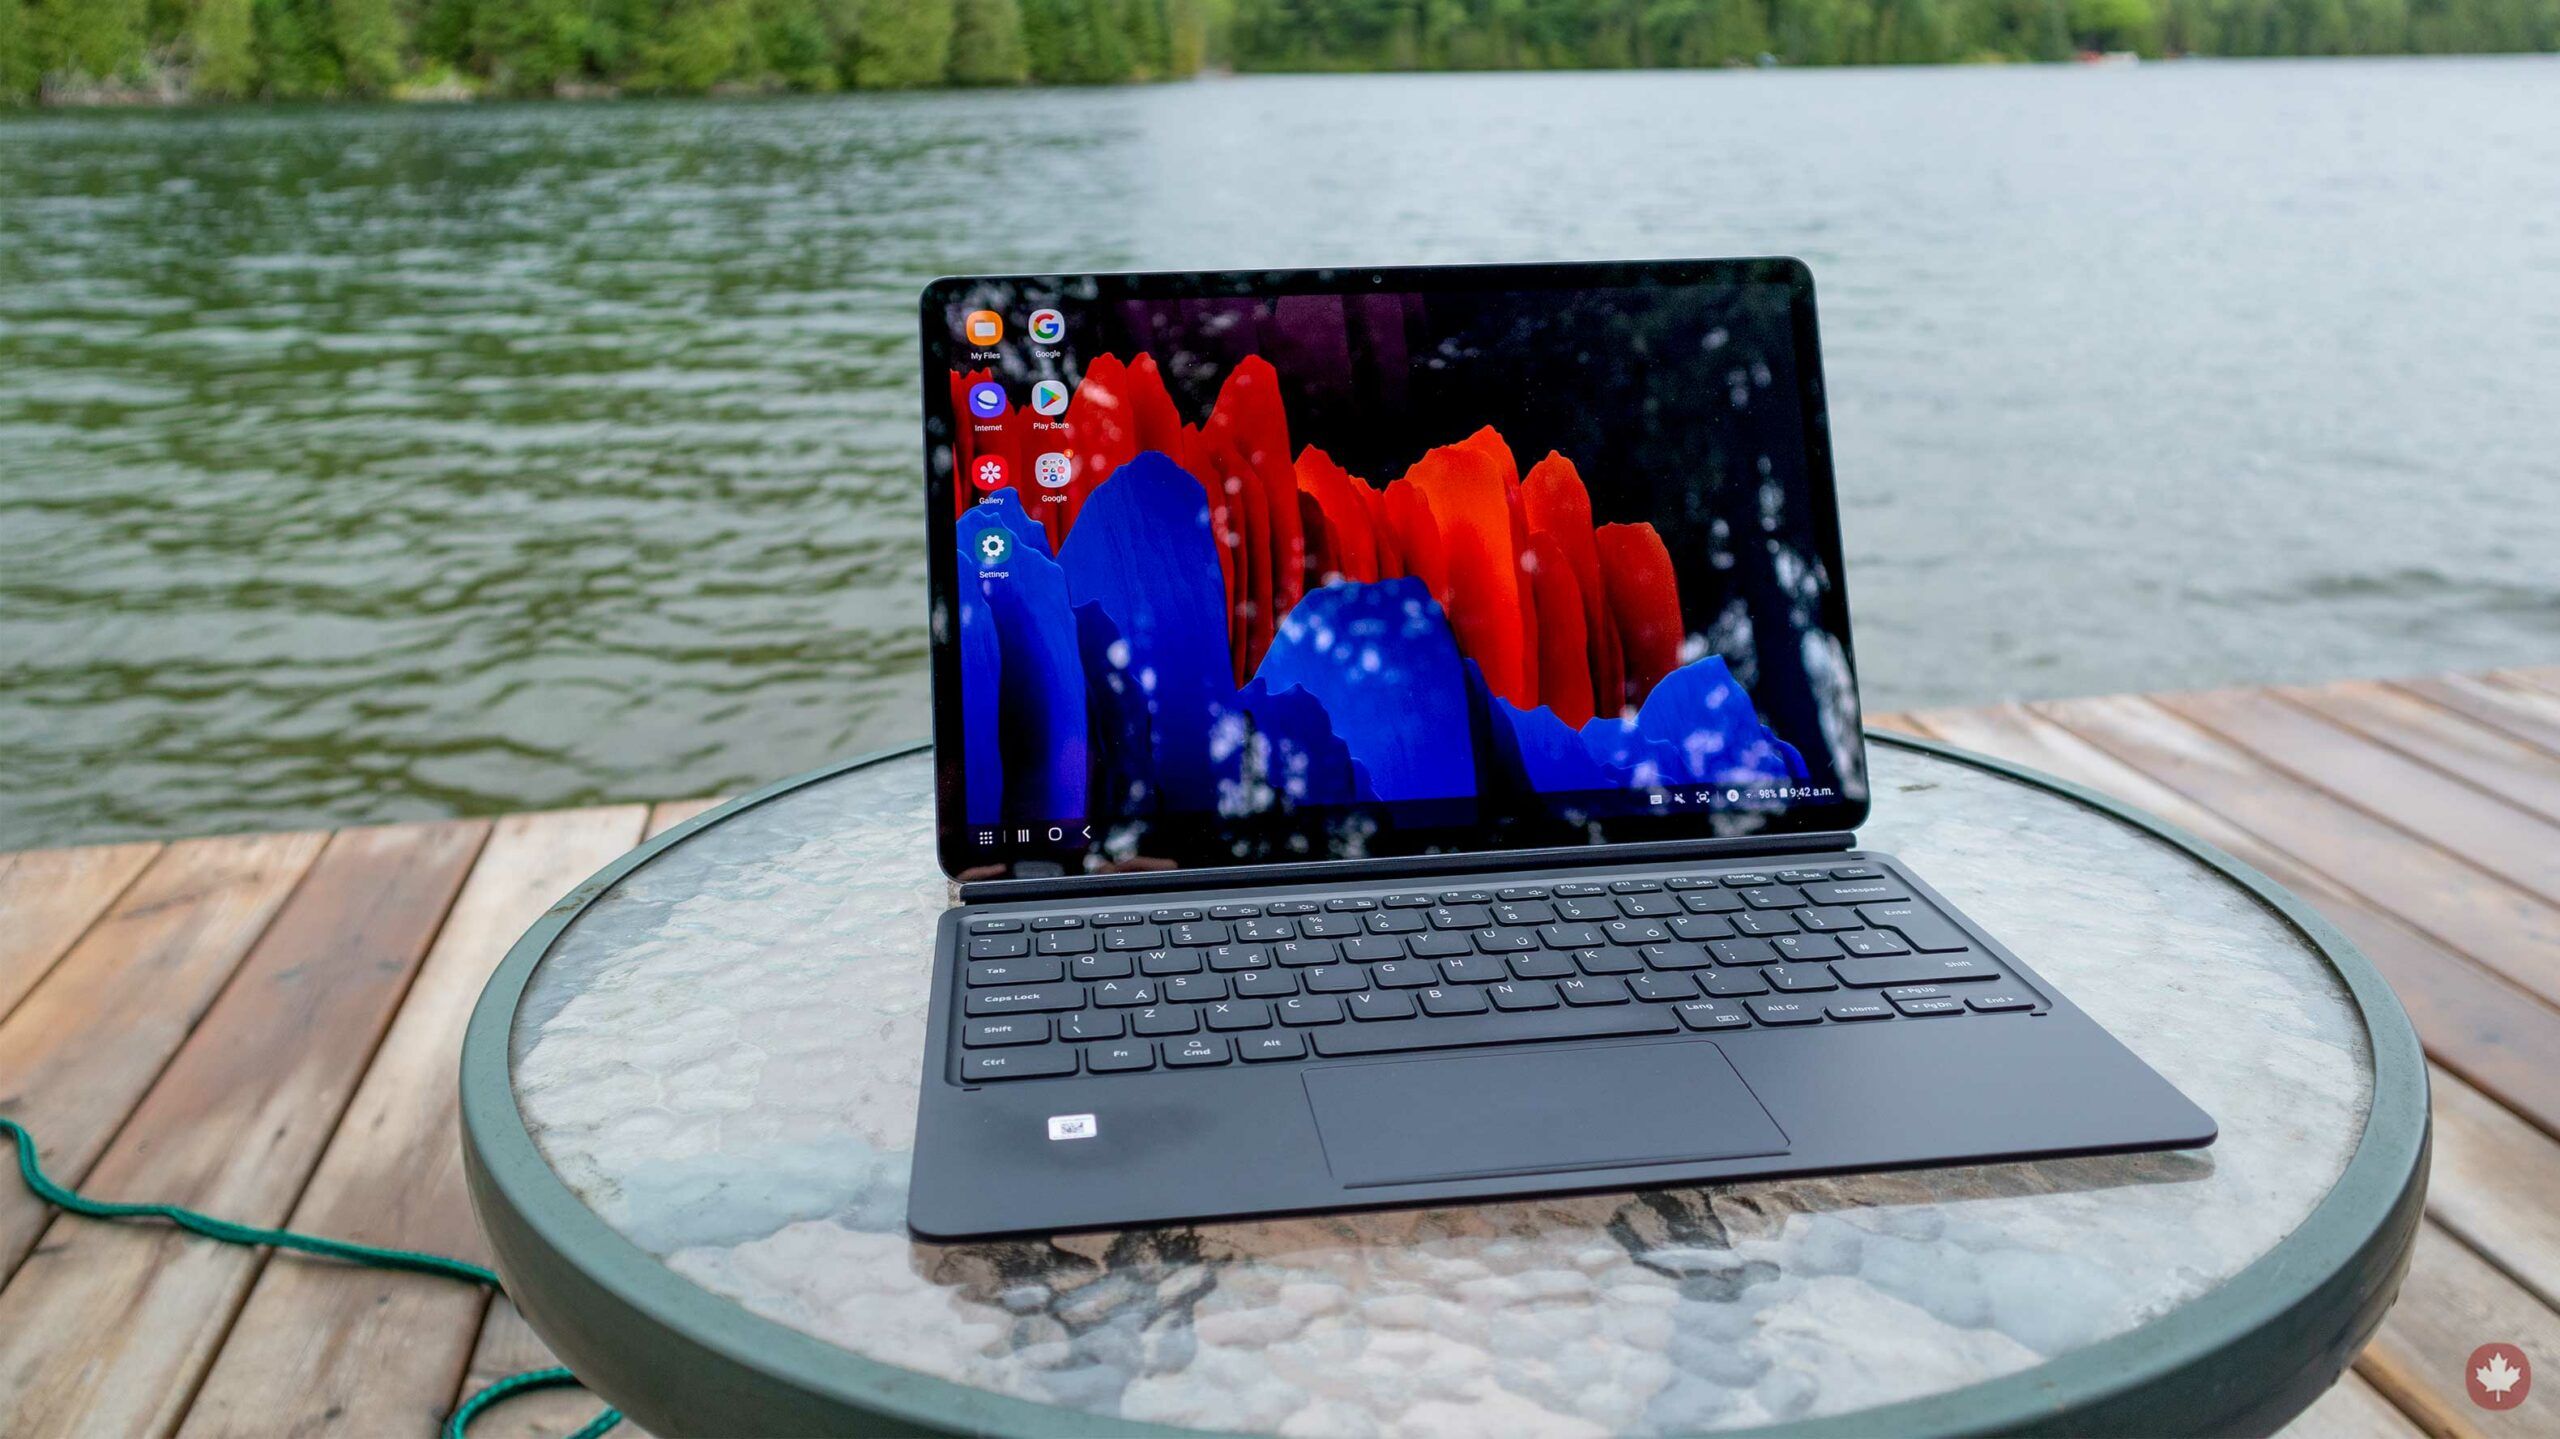 Samsung Galaxy Tab S7 Hands On Inching Closer To Becoming A Productivity Powerhouse